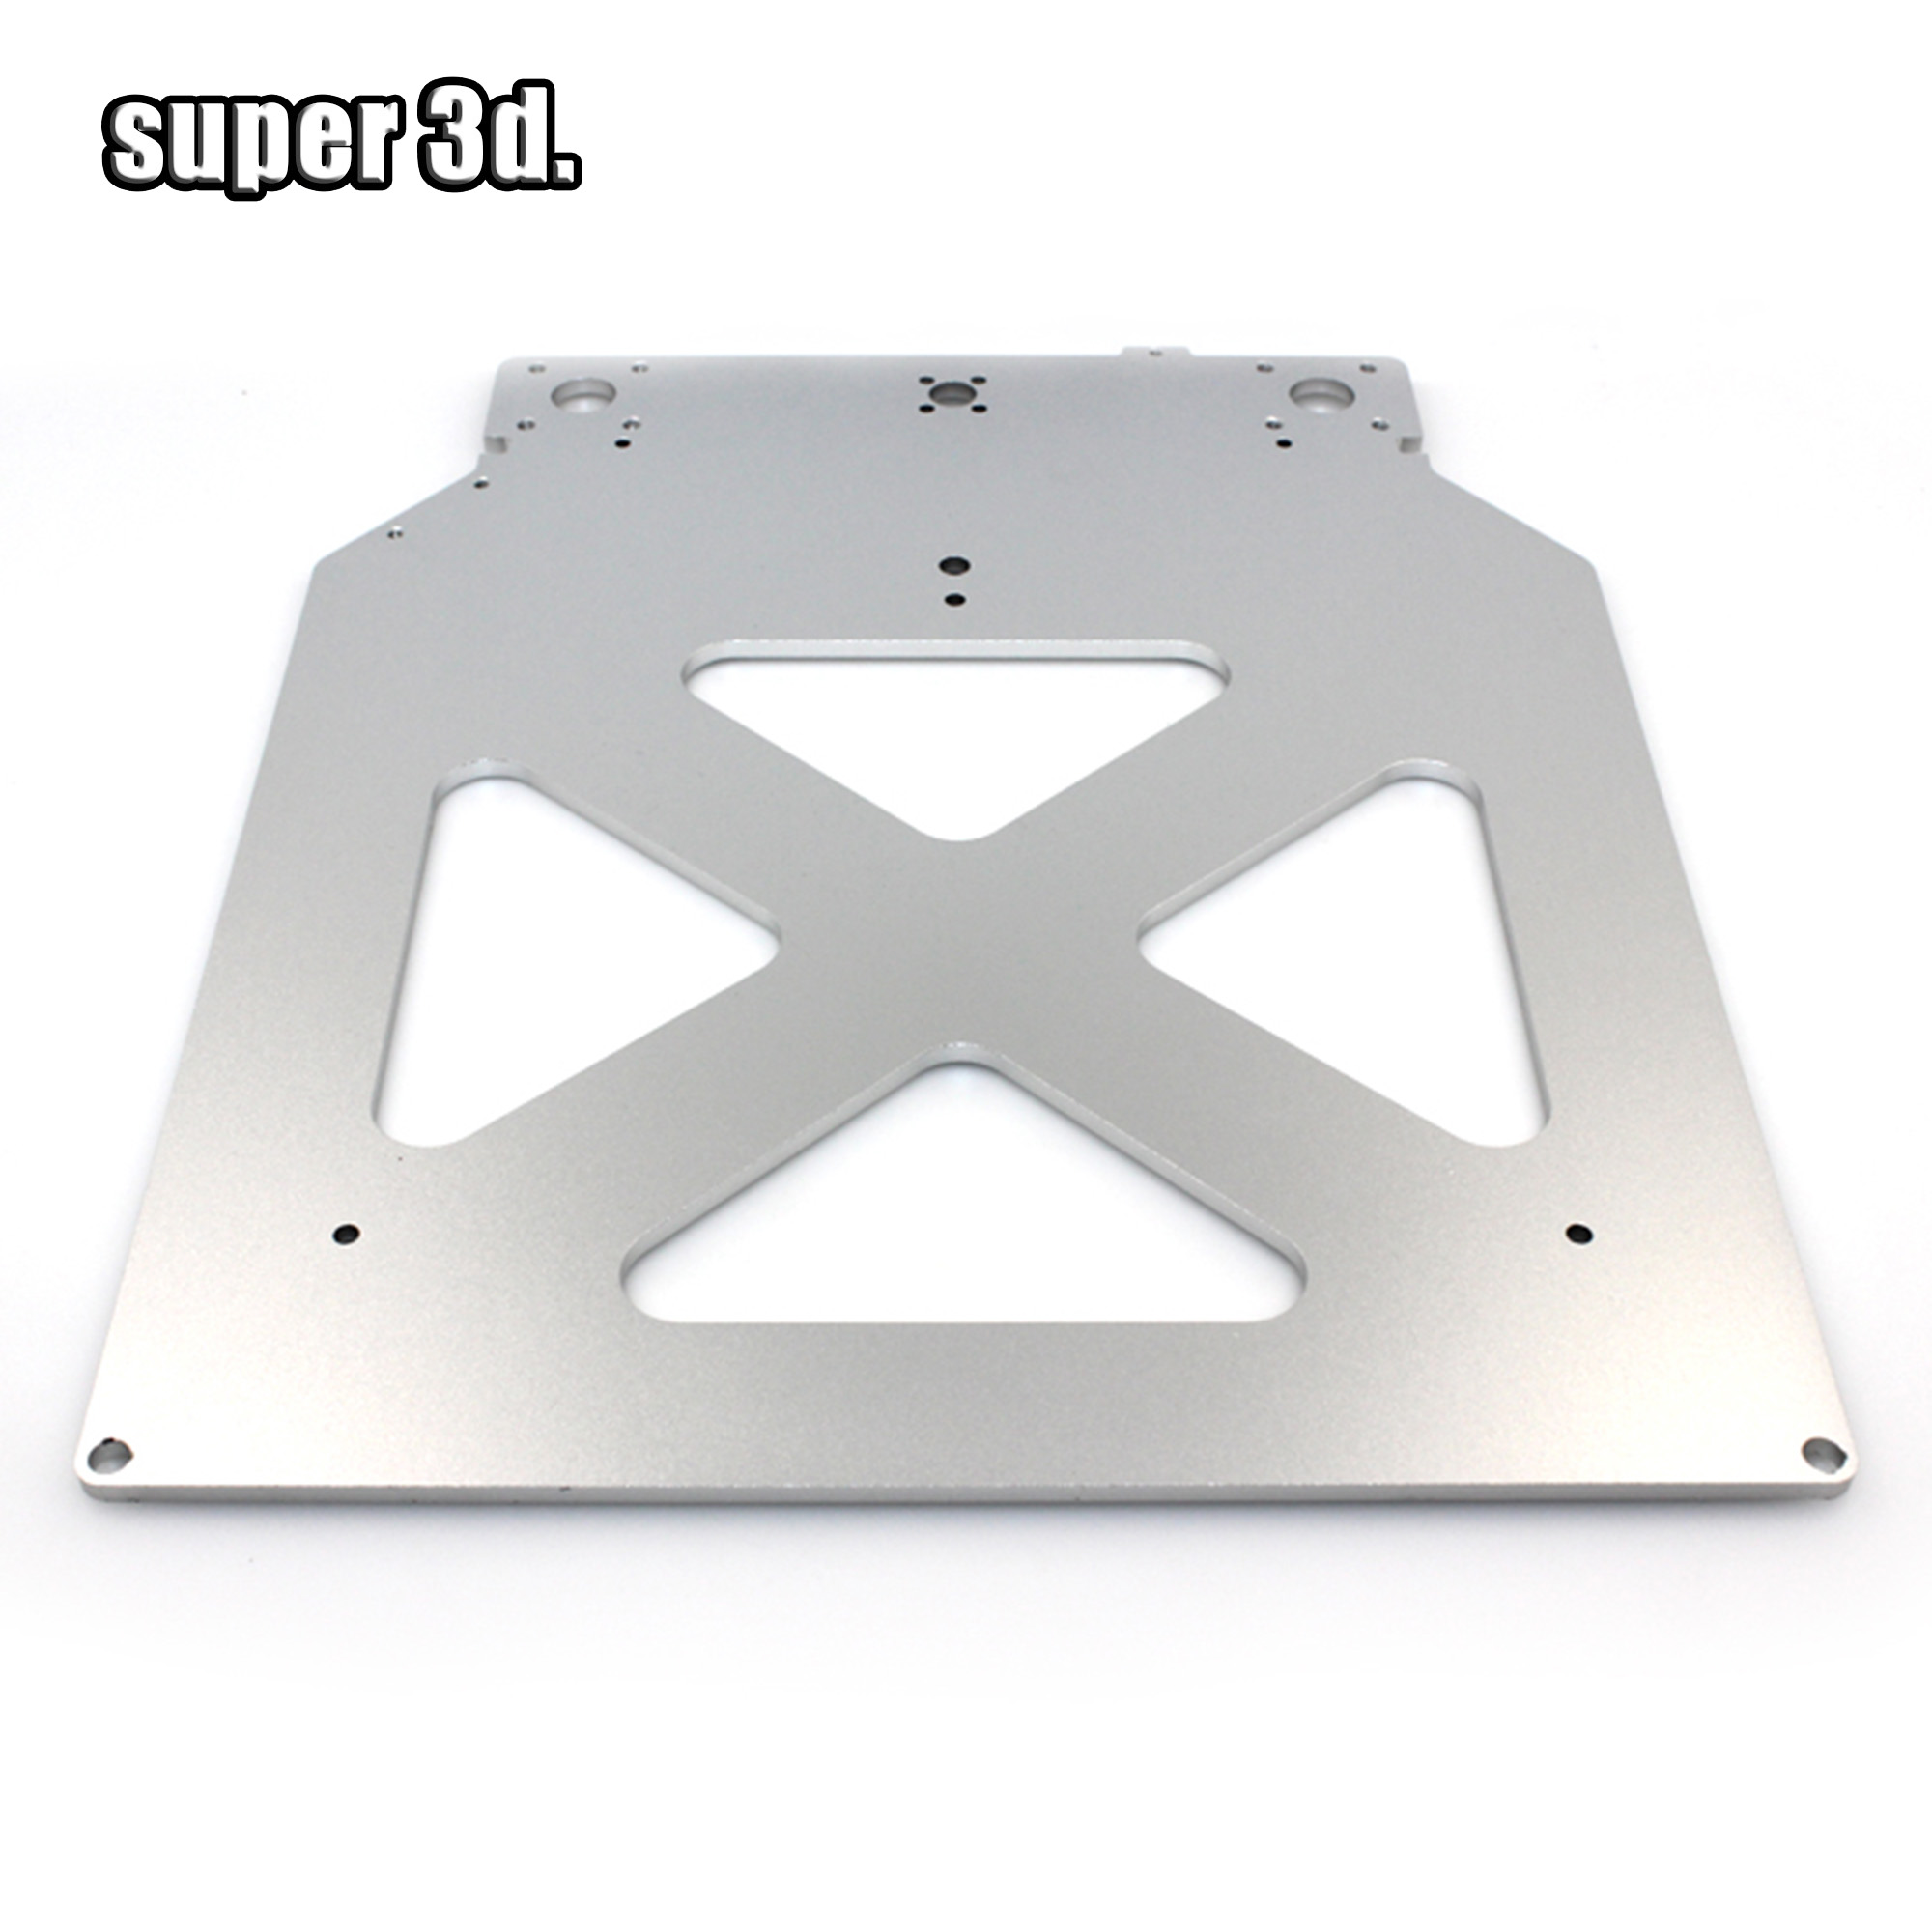 Ultimaker 2 UM2 Z Table Base Plate Platform Bracket Supporting Aluminum Heated Hot Bed Plate  For 3D Printer Parts